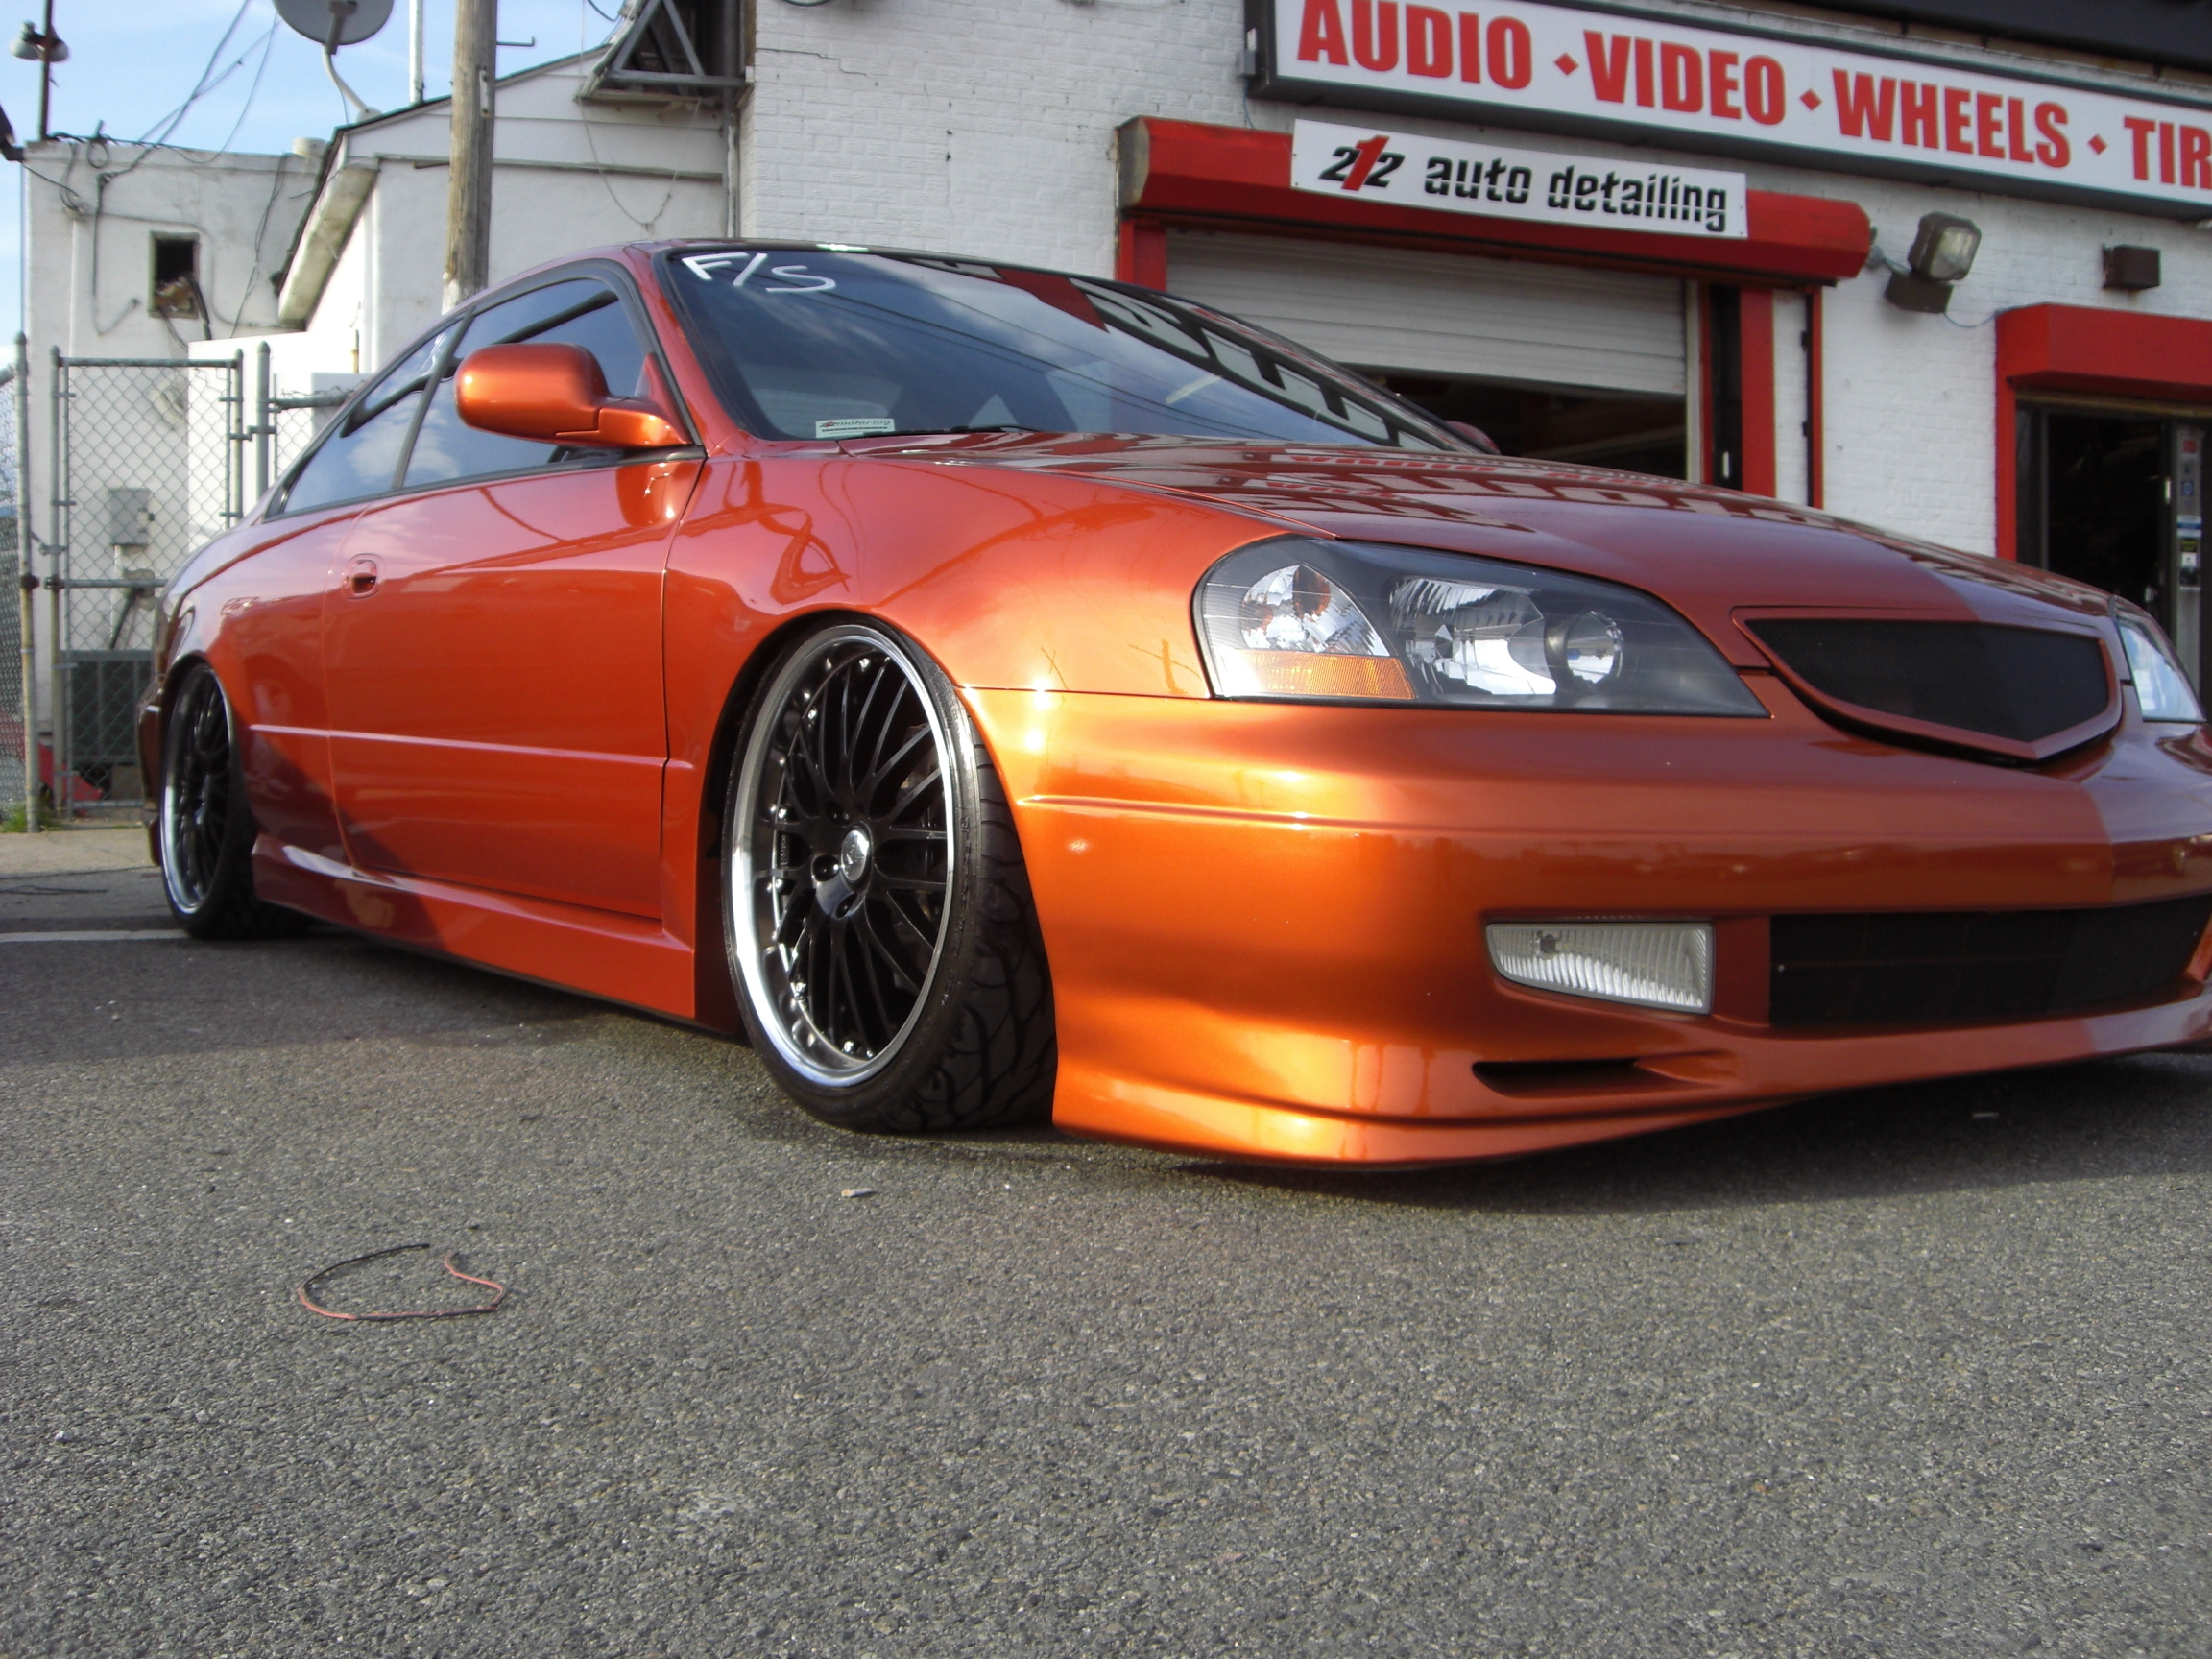 withoutcomp1's 2001 Acura CL